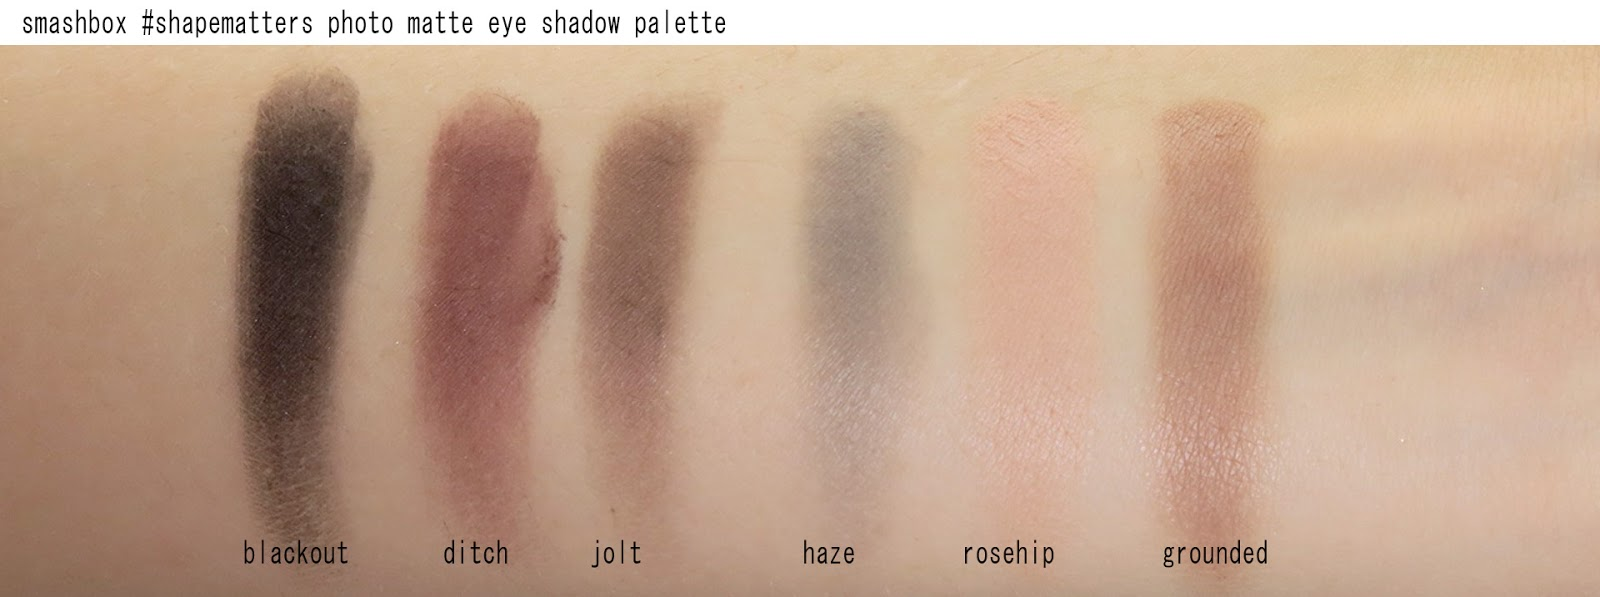 Smashbox Photo Matte Eye Palette Mascara Review Swatches